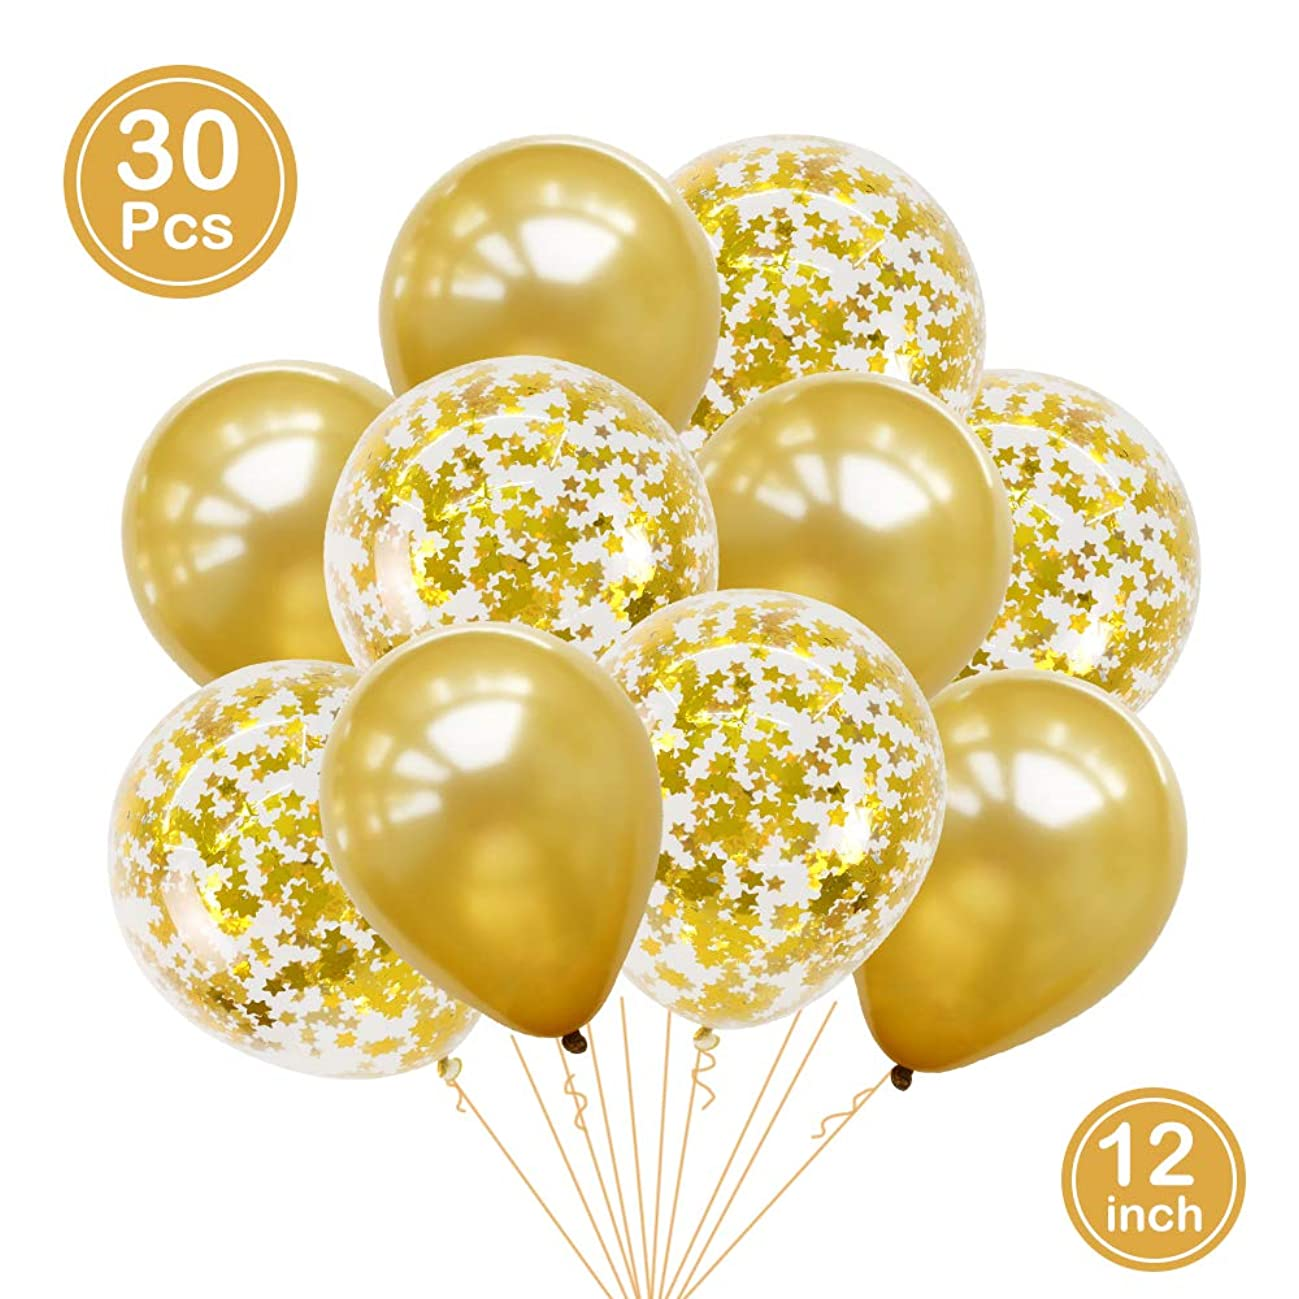 BALONAR 30pcs Gold Star Pre-Filled Confetti Balloons Party Gold Latex Balloons with Gold Star Confetti Latex Balloons for Birthday Party Wedding Supplies Decorations